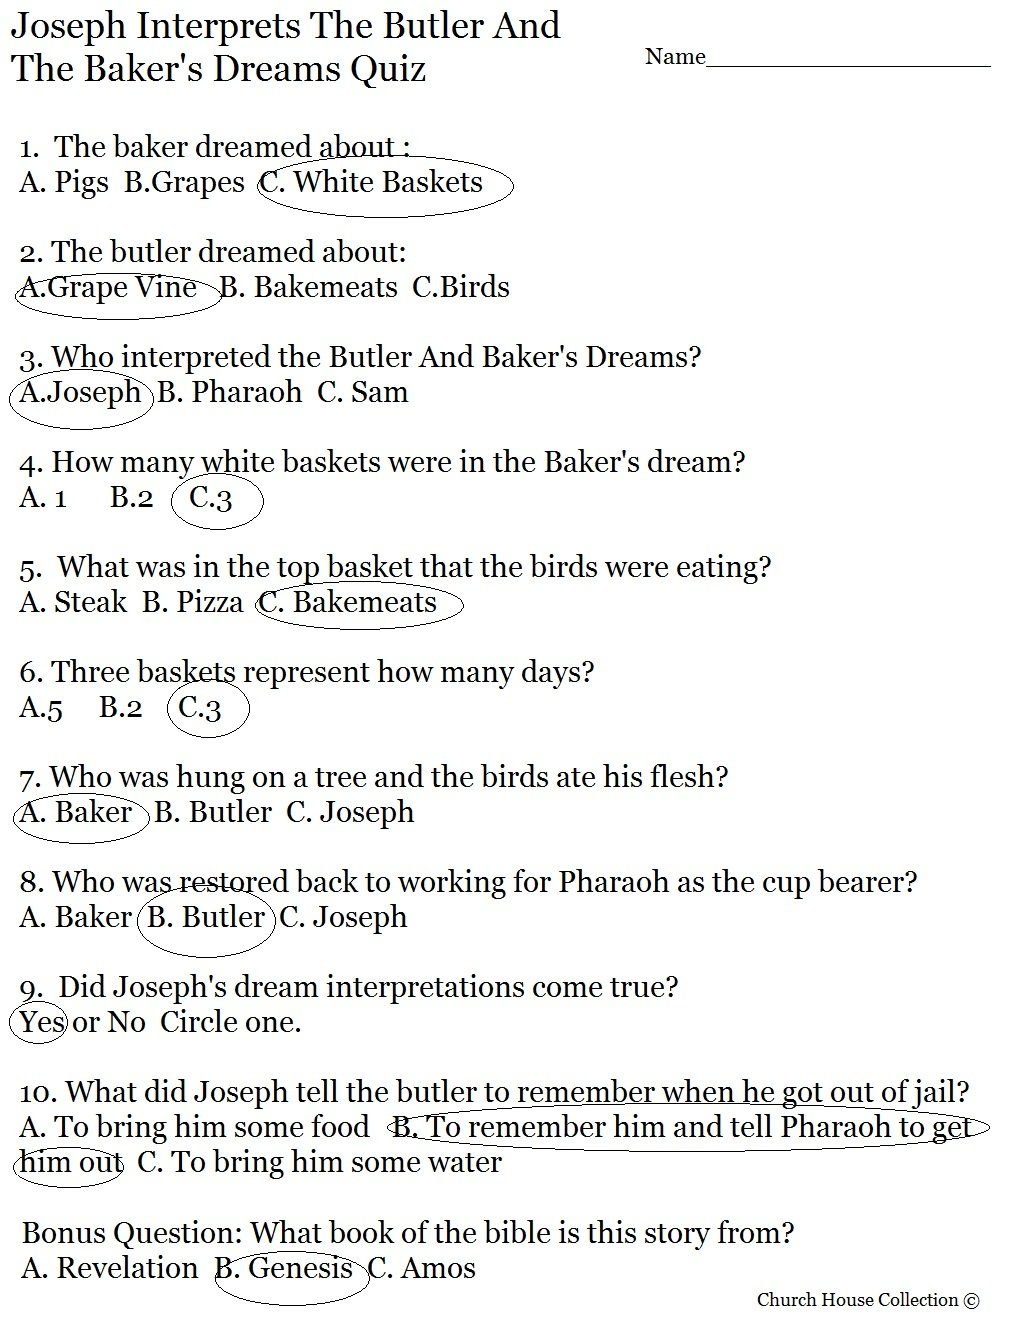 Joseph Interprets Butler And Bakers Dream Quiz